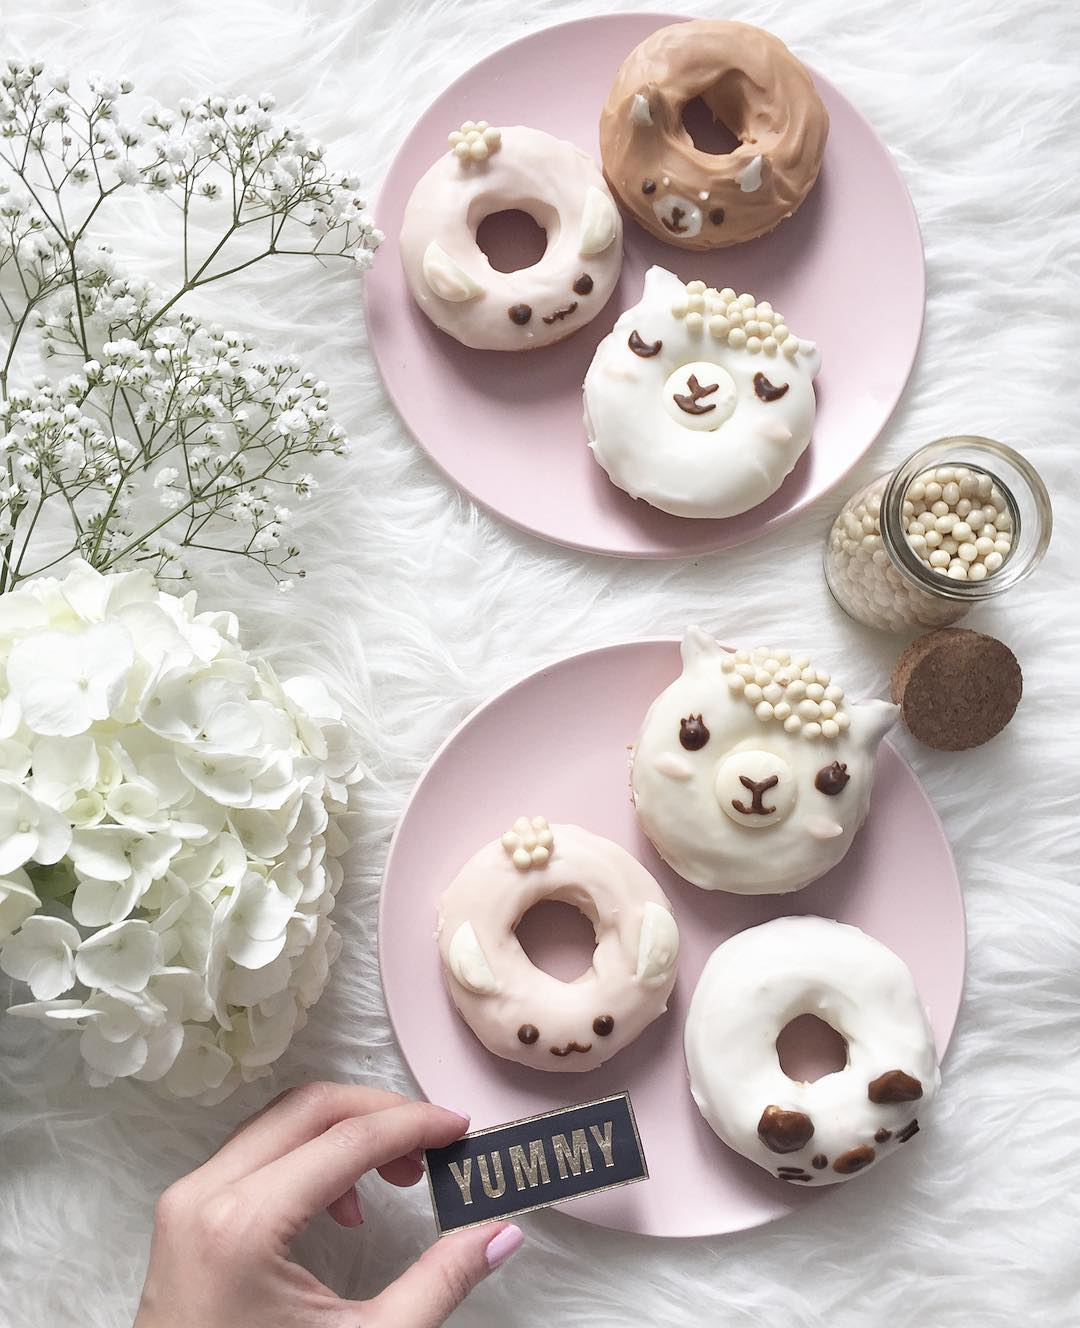 50+ Lovely Llama Crafts, Printables, SVG's DIY's, Food and Gift Ideas: Llama Donuts from Burberrie Jam on Instagram